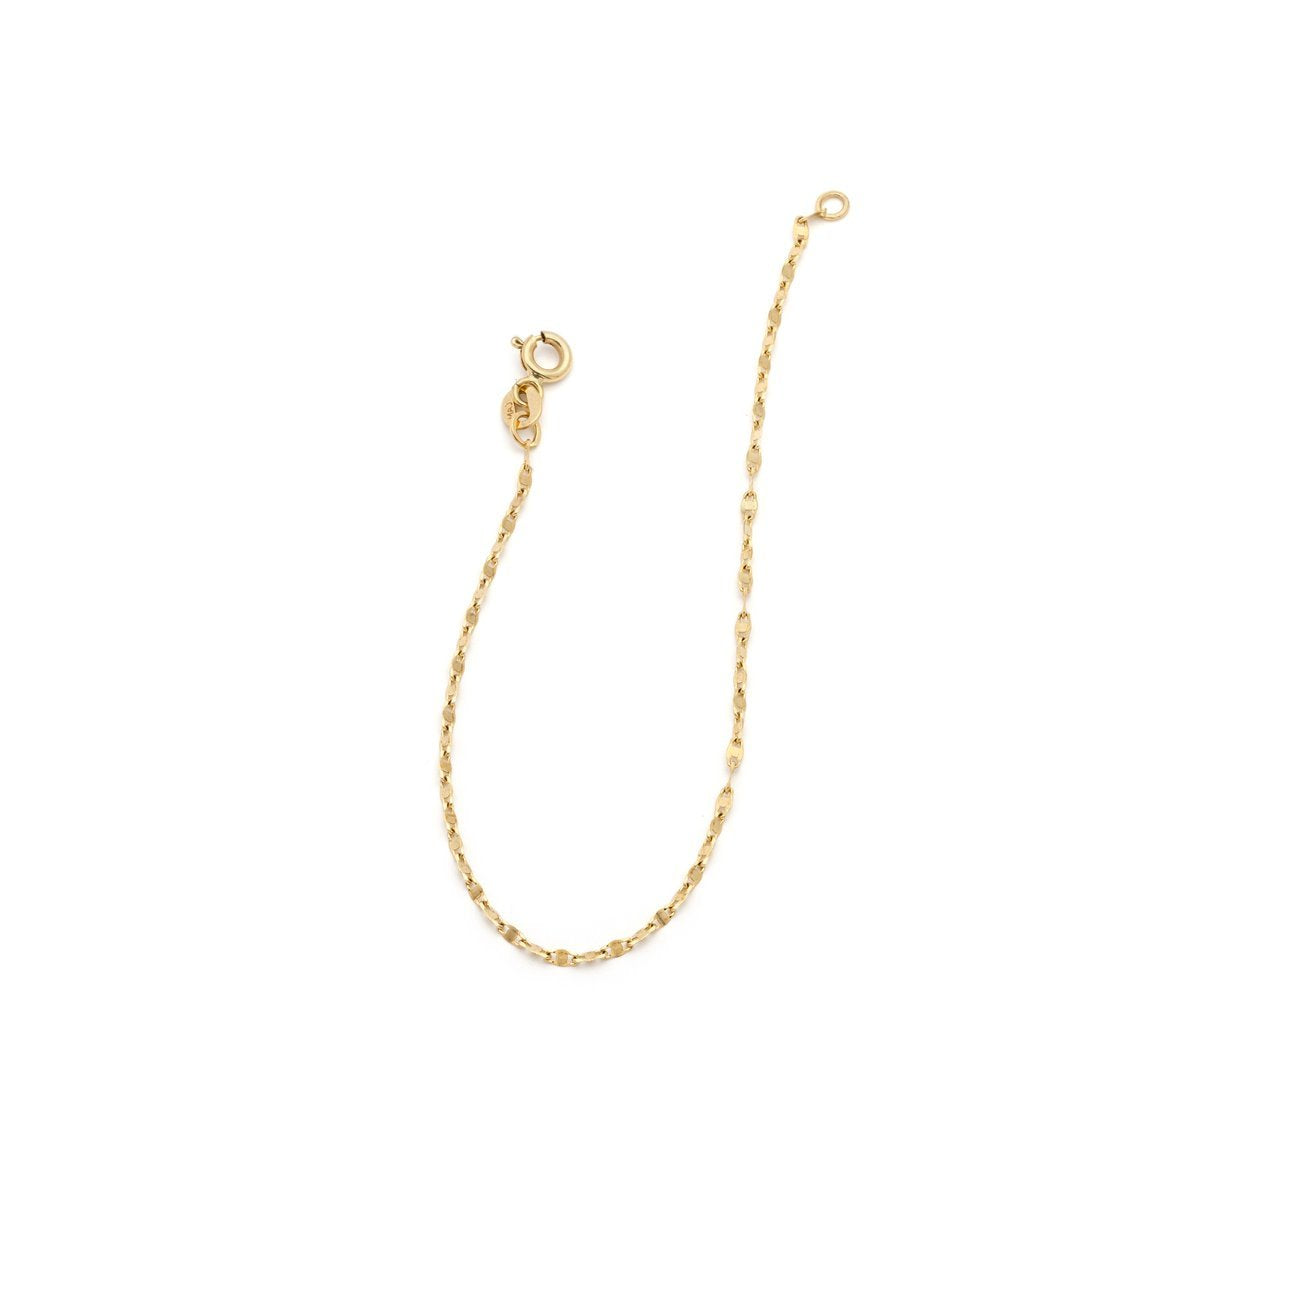 Fancy Chain Anklet - 10k Solid Gold